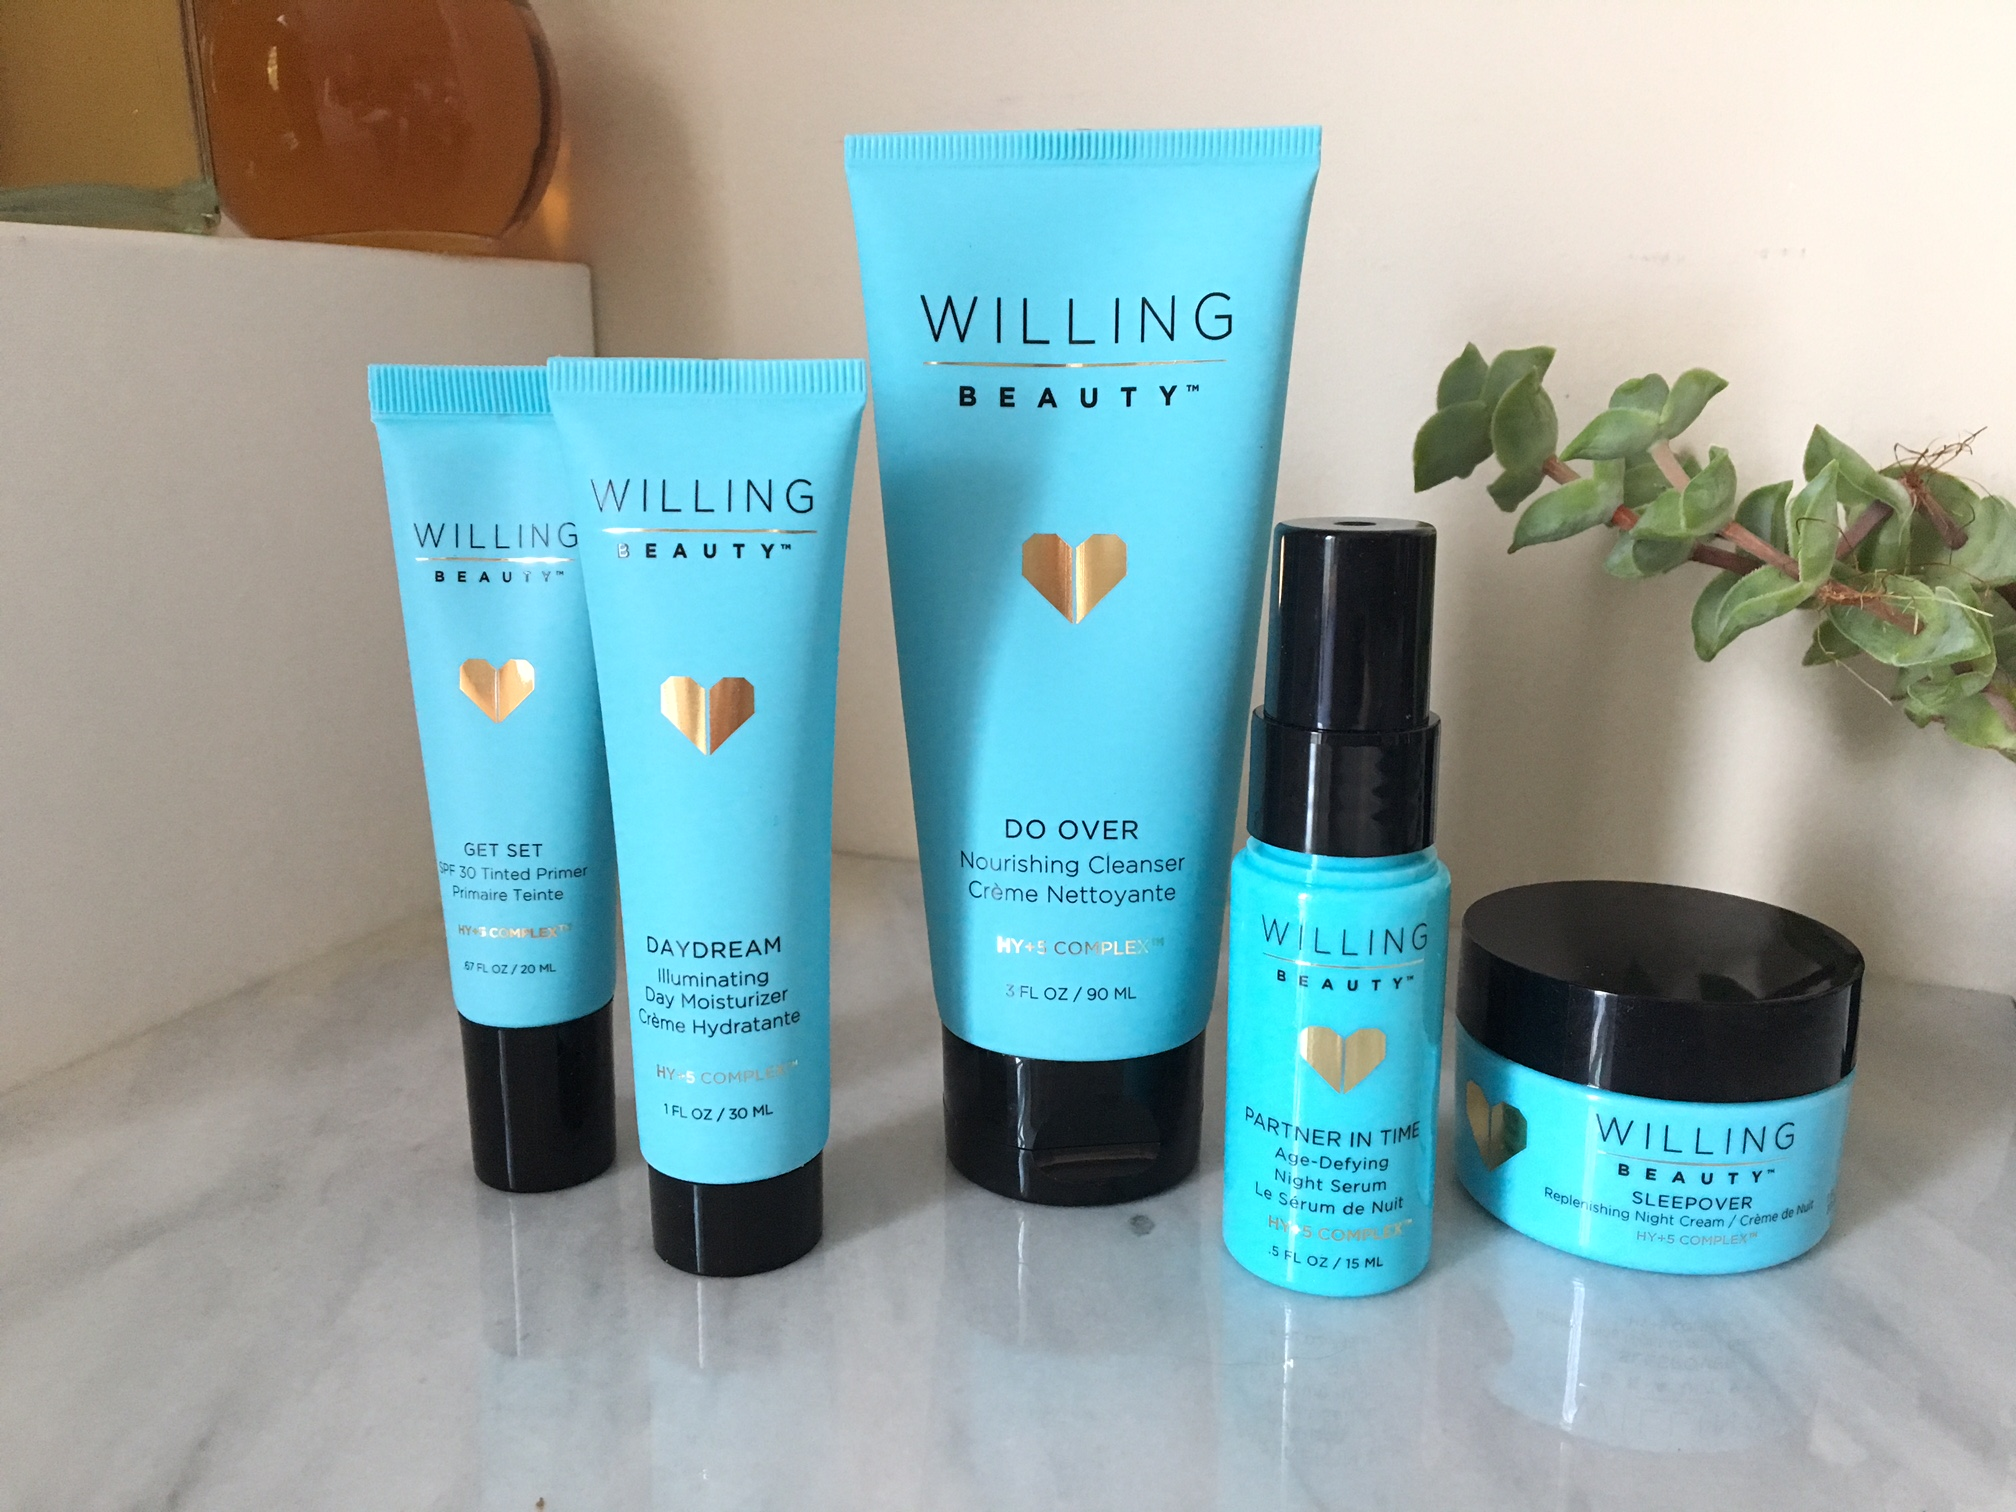 Willing Beauty Review – 2